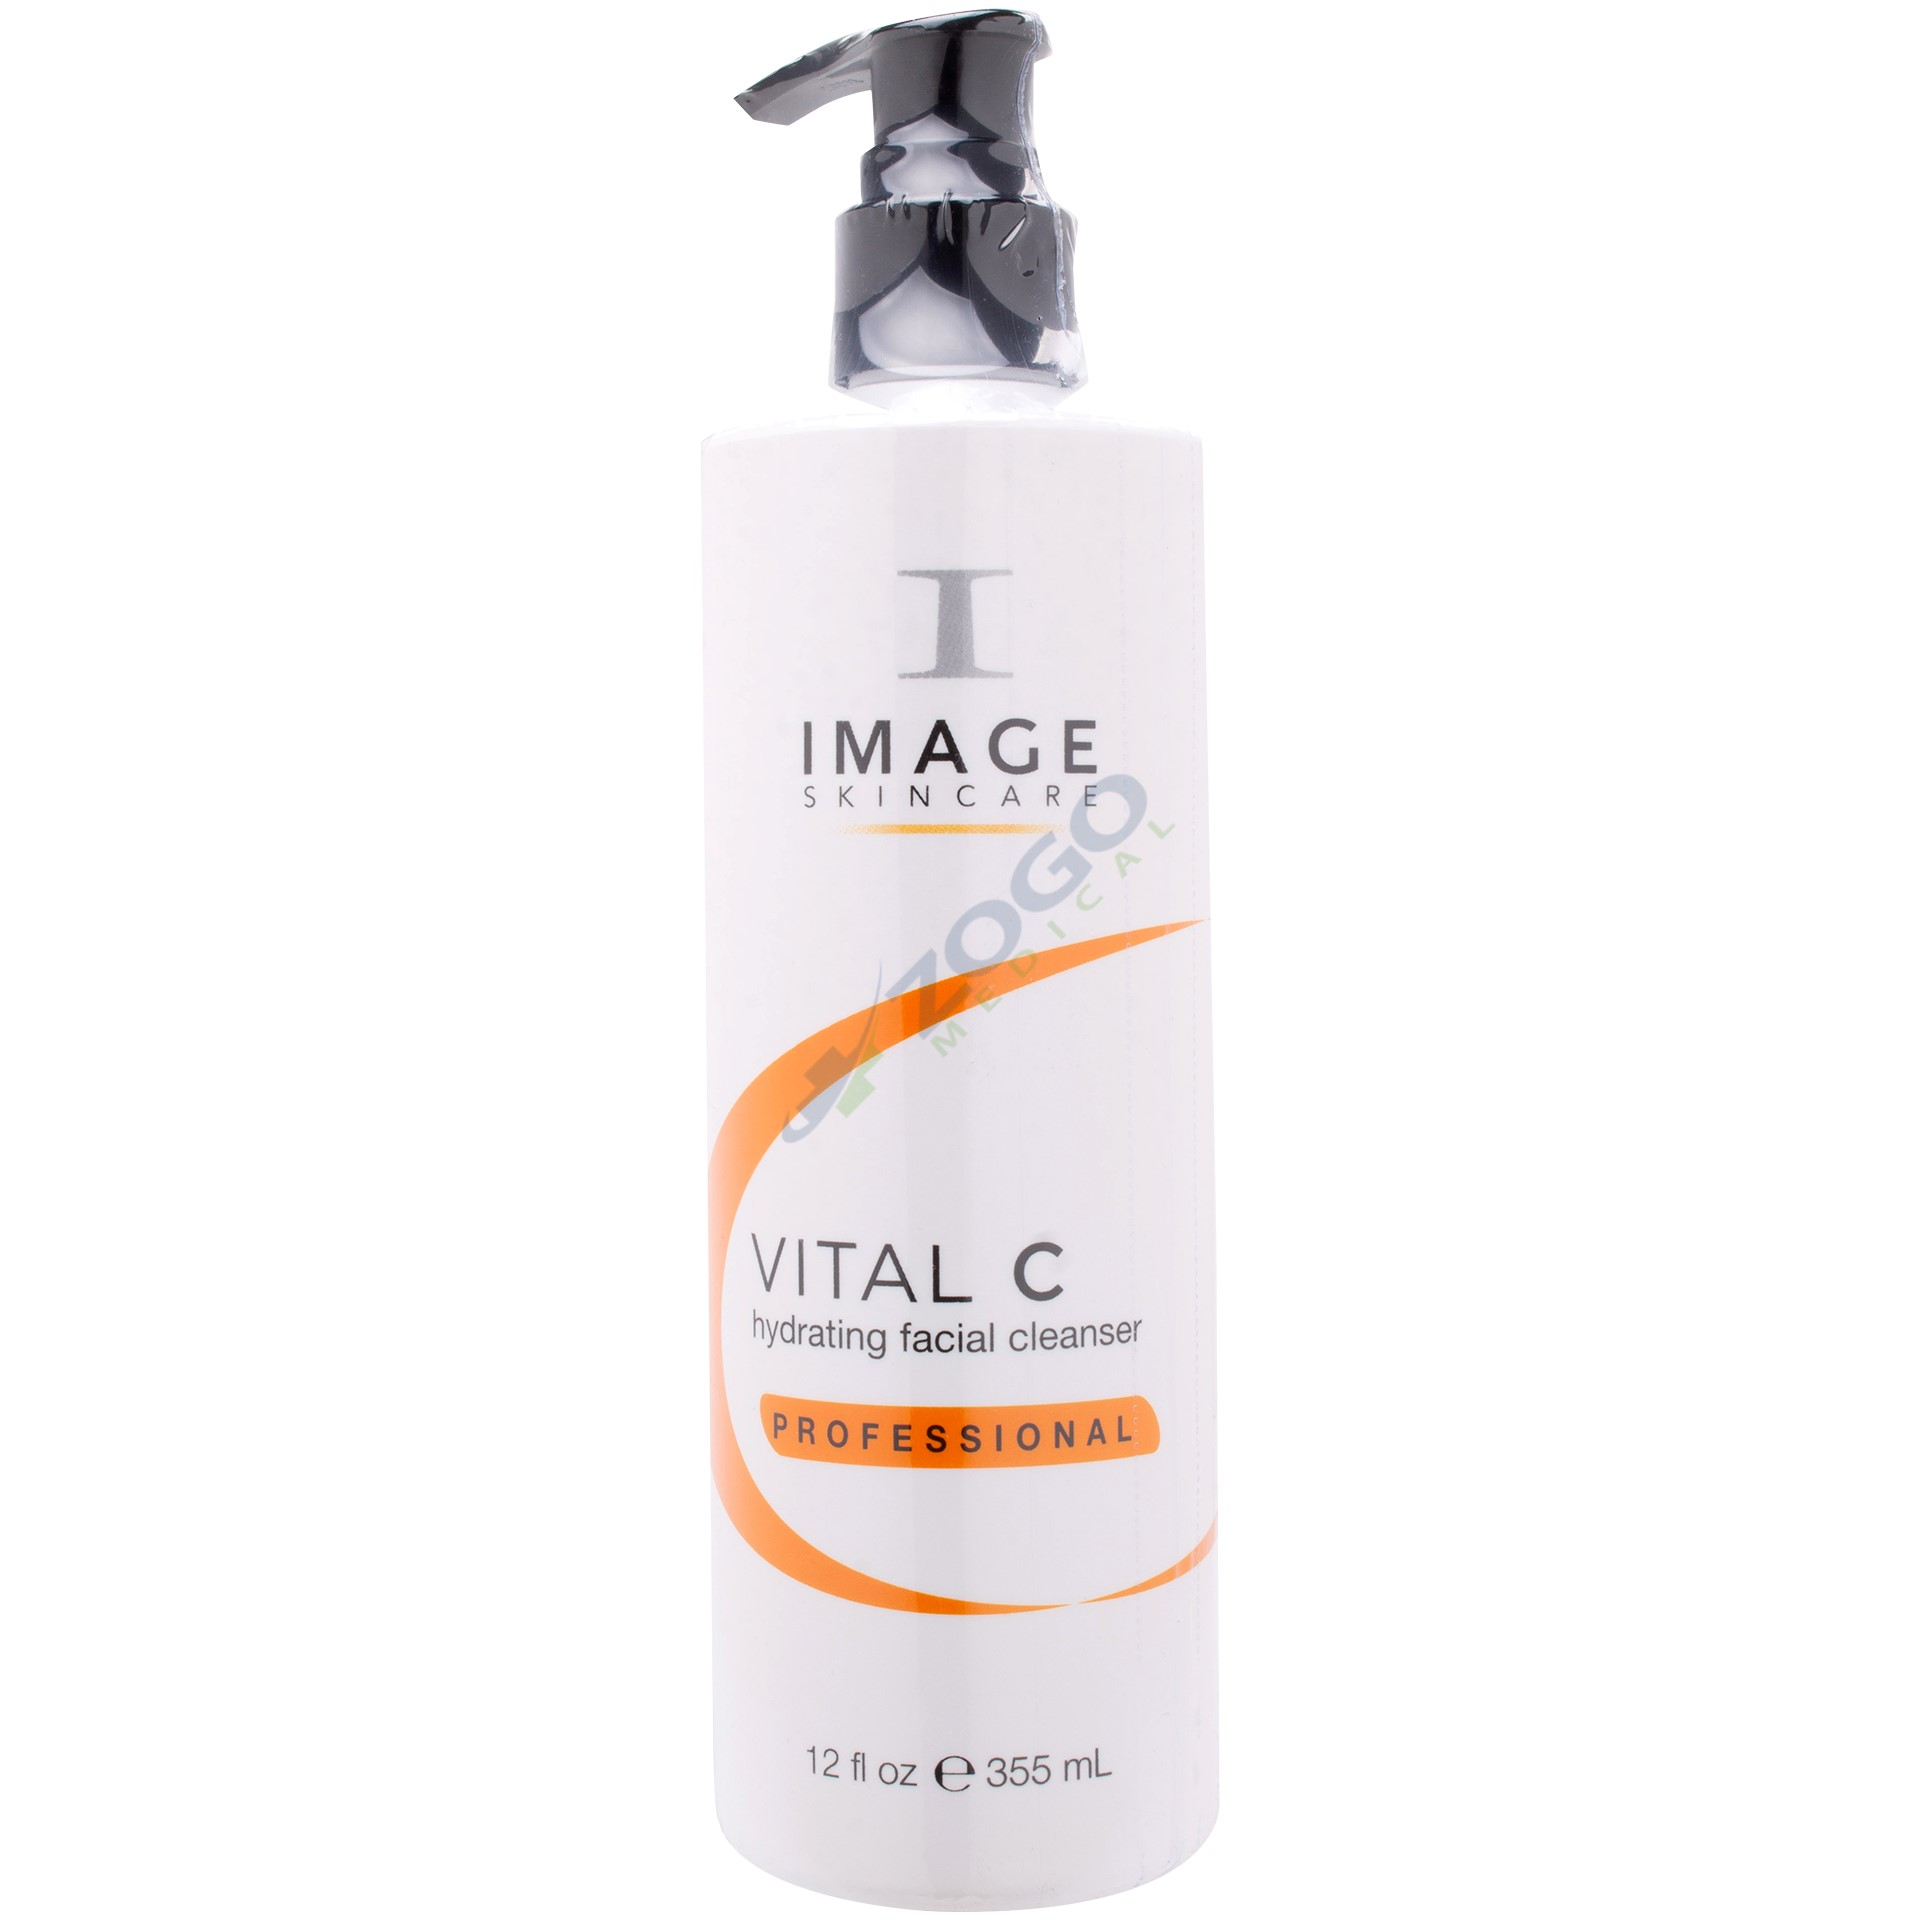 Image Skincare Vital C Hydrating Facial Cleanser 12 Oz Large Pro